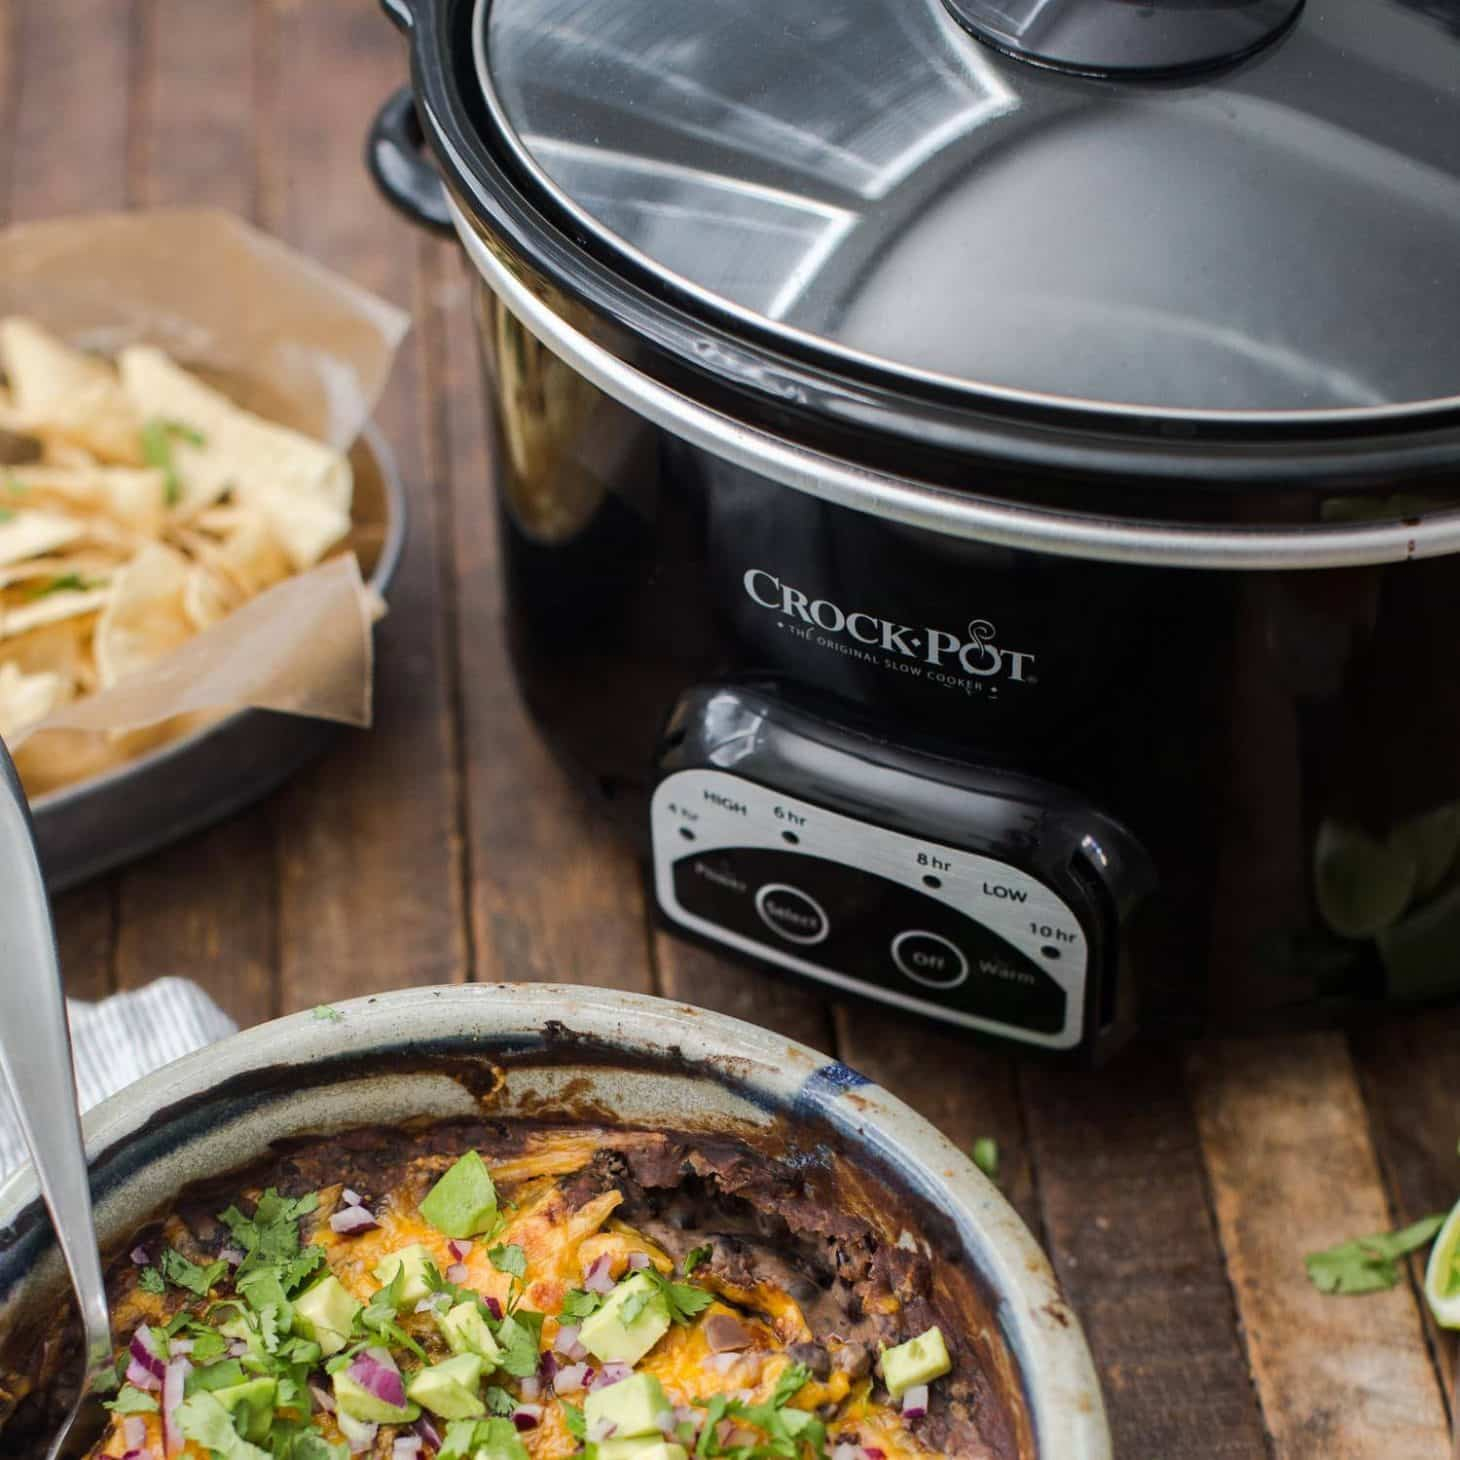 Crockpot Slow Cooker | @naturallyella